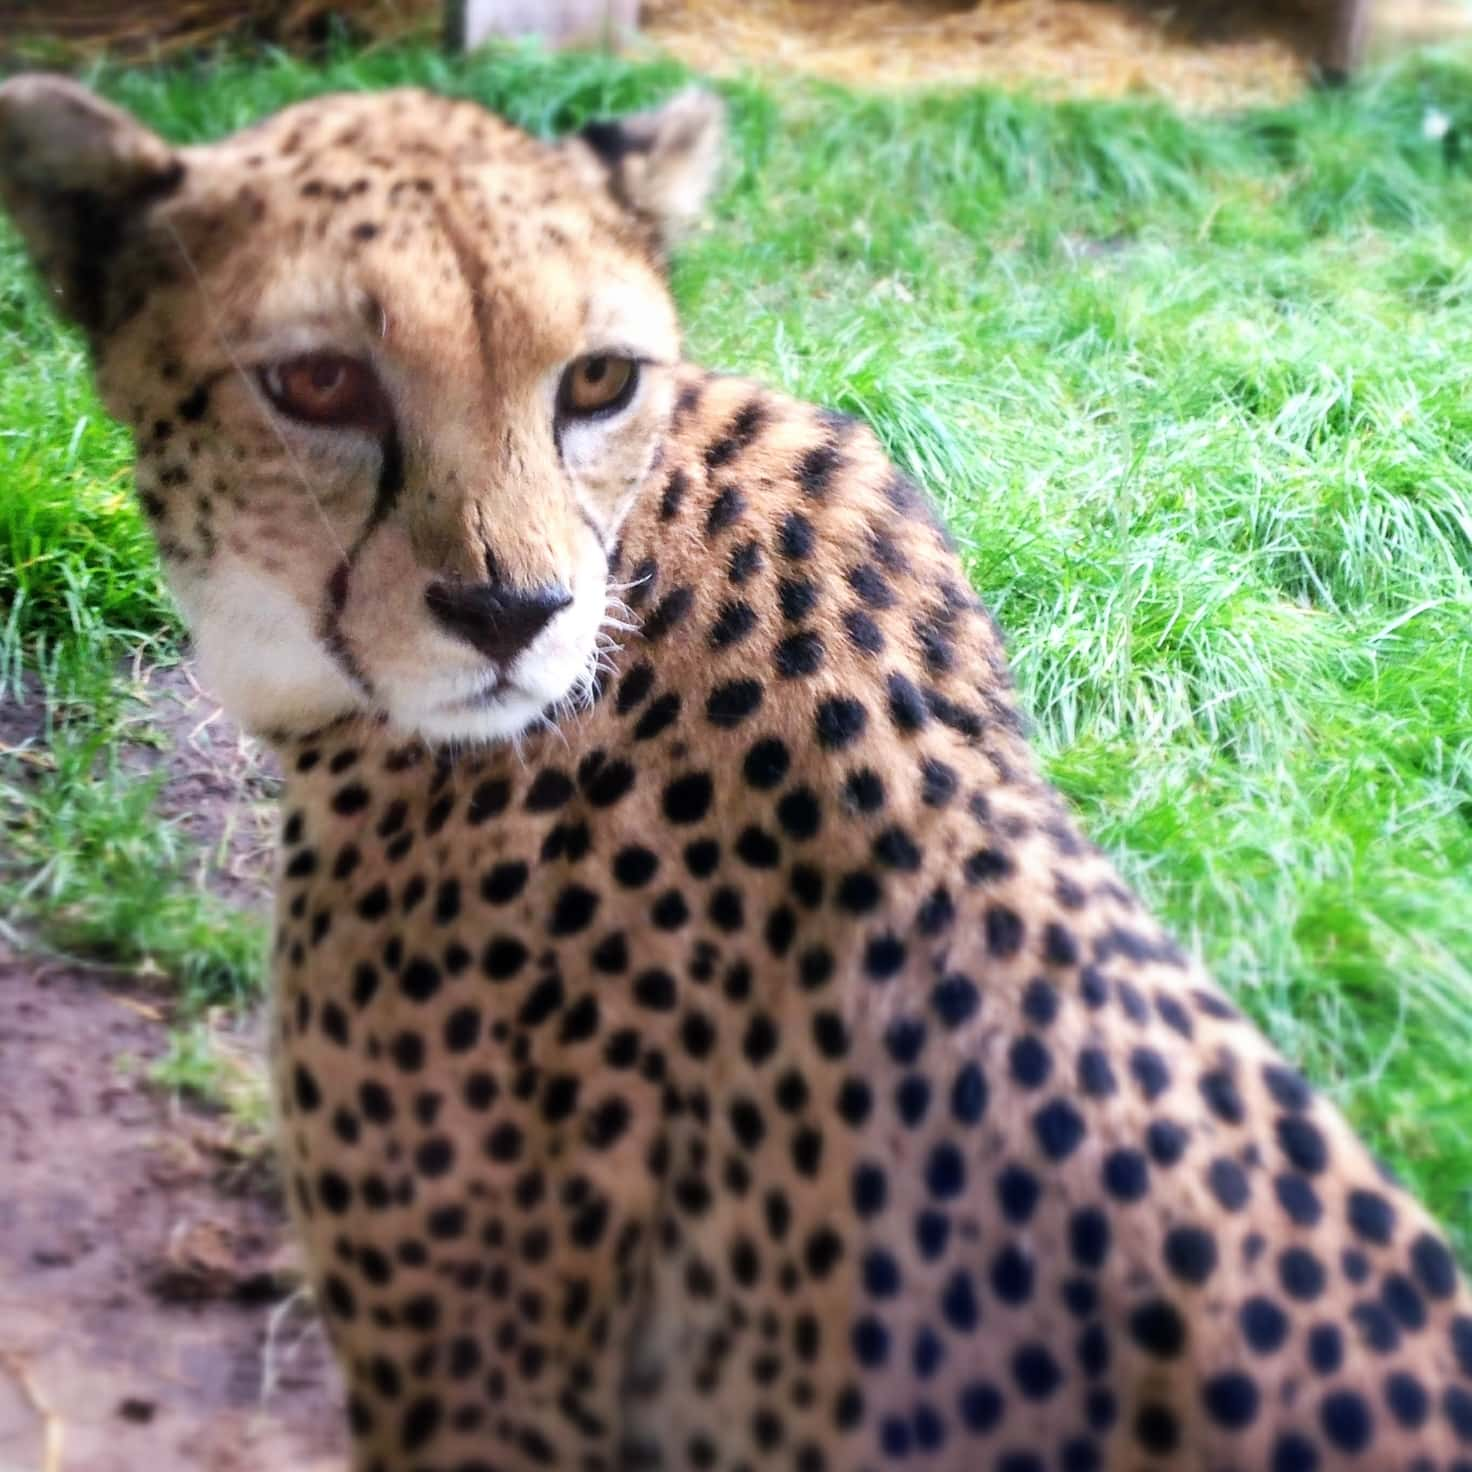 """Cheetah. Photograph by Ellen Vrana featured in Franz de Waal's """"Are We Smart Enough to Know How Smart Animals Are?"""" in the Examined Life Library."""